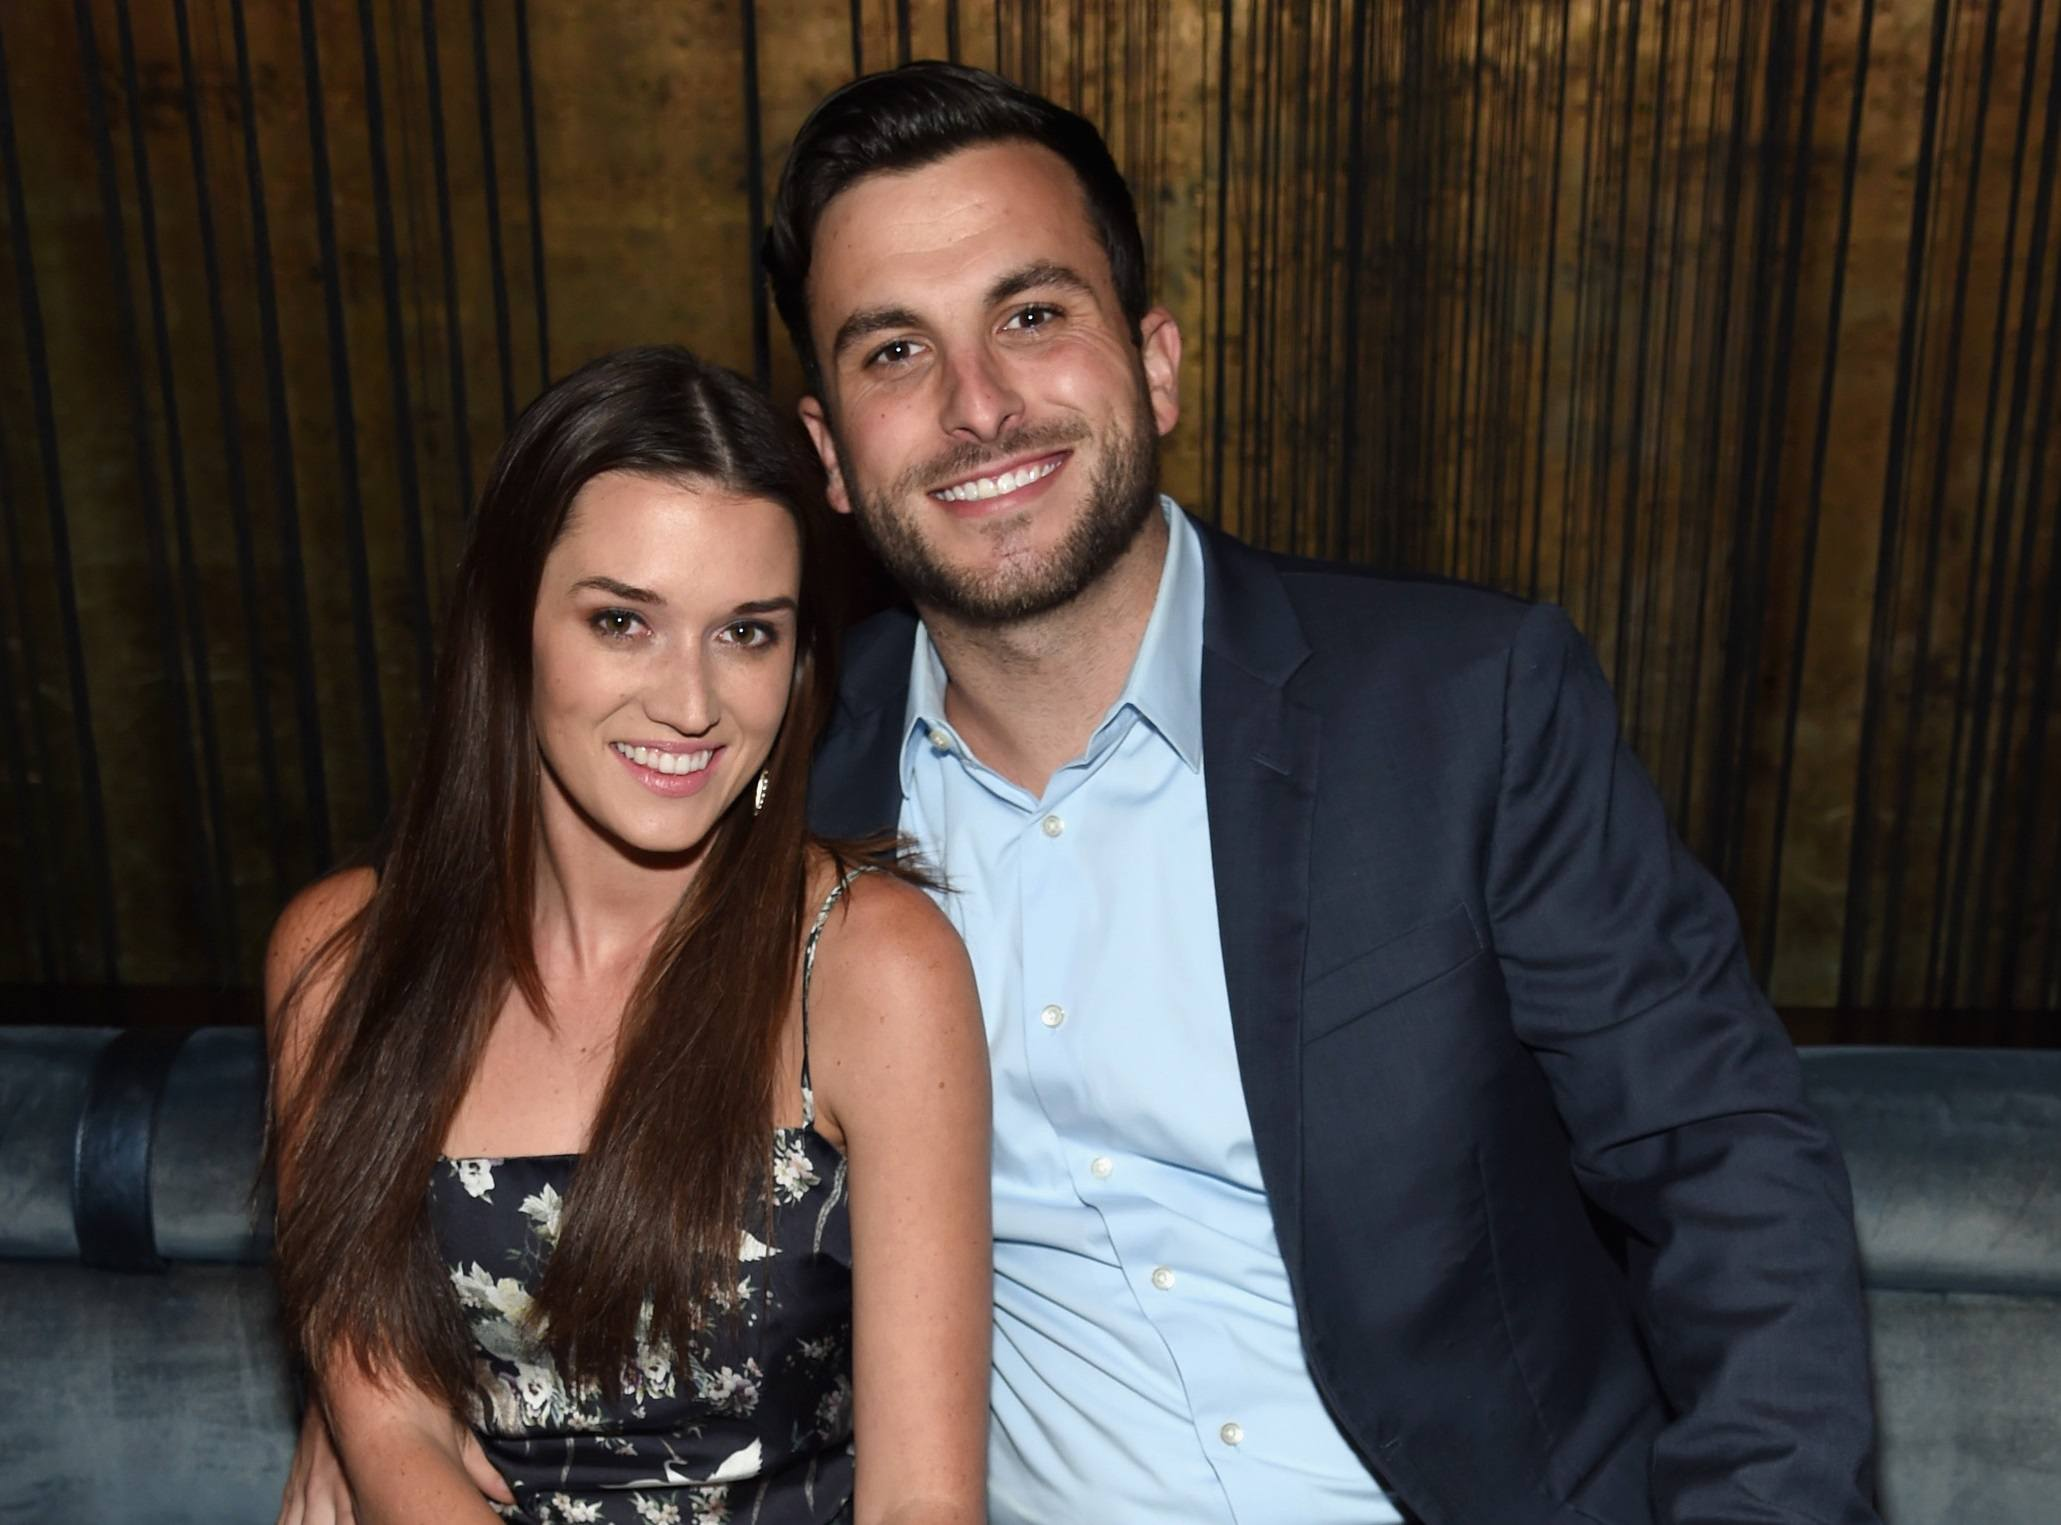 Jade Roper and Tanner Tolbert attend The Season 6 Premiere of Marriage Boot Camp Reality Stars at Up & Down on September 22, 2016 in New York City.